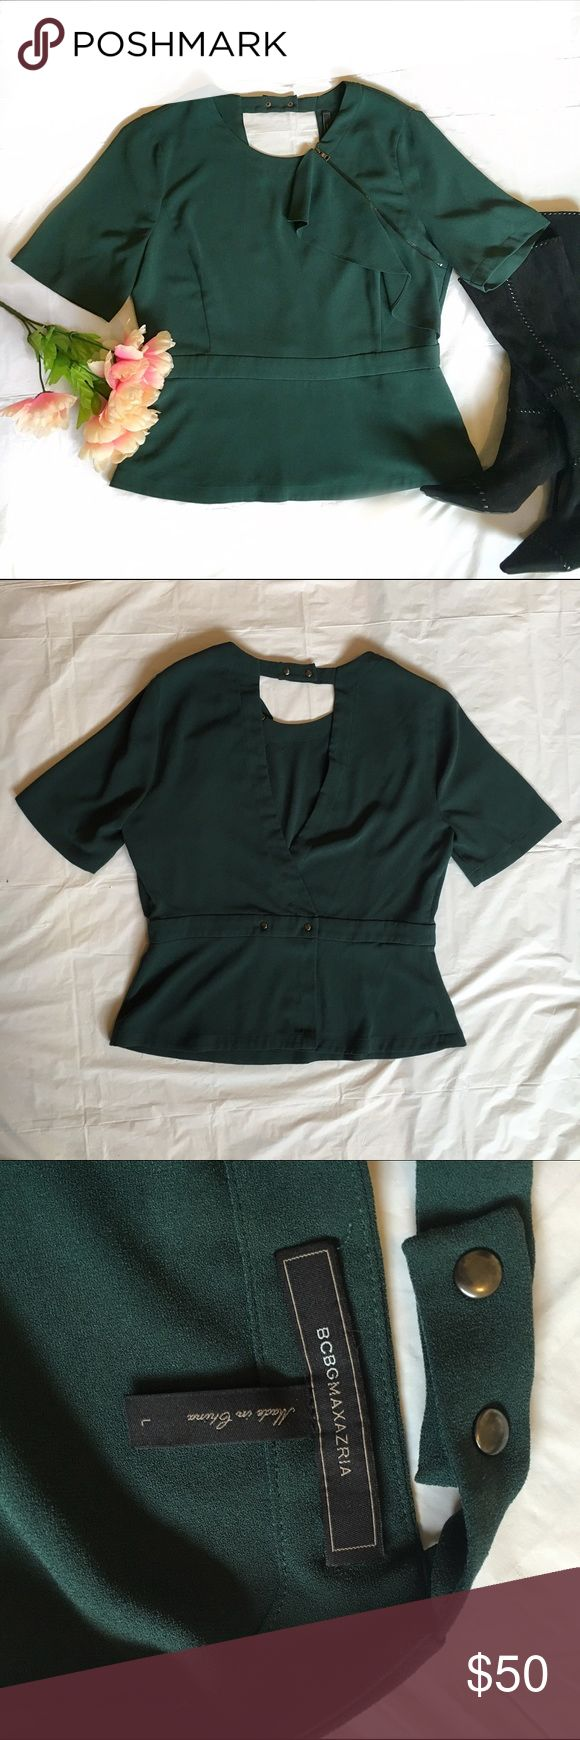 BCBG Max Azria peplum blouse Beautiful forest green peplum top. Features cascading ruffle detail and sipped shoulder. Open triangle in the back. This blouse is professional chic. BCBGMaxAzria Tops Blouses